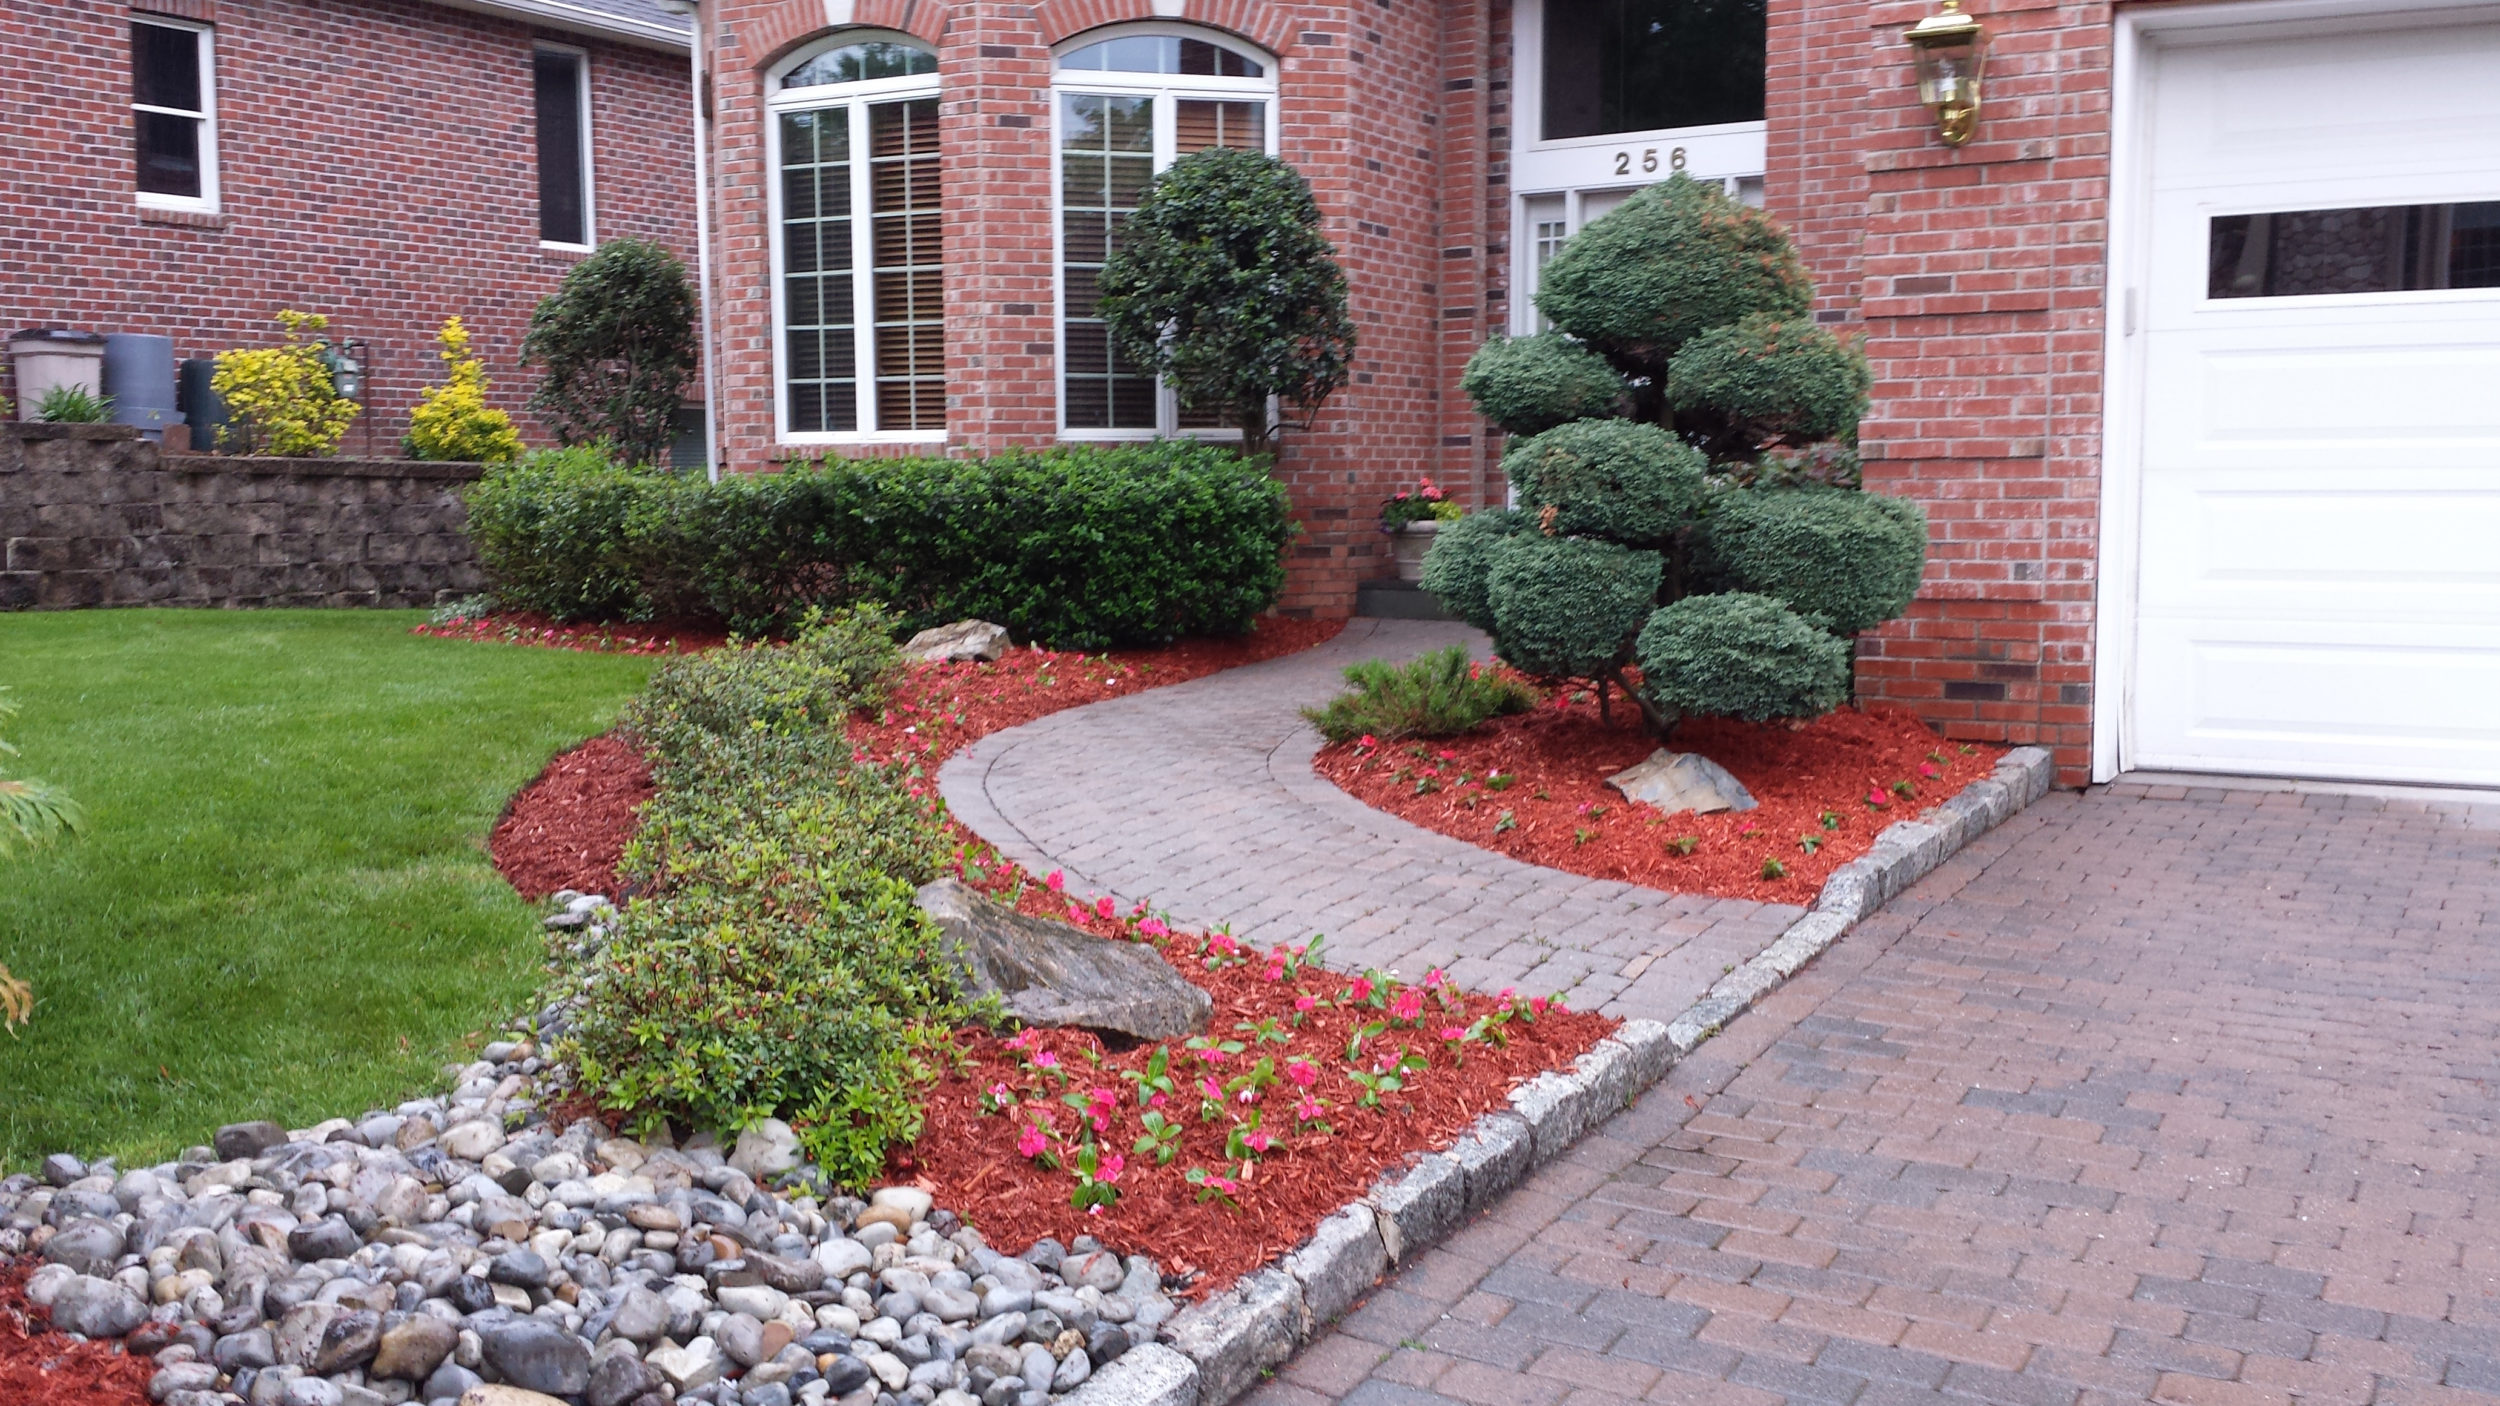 Hardsacping job in Bergen county by Onorato Landscaping